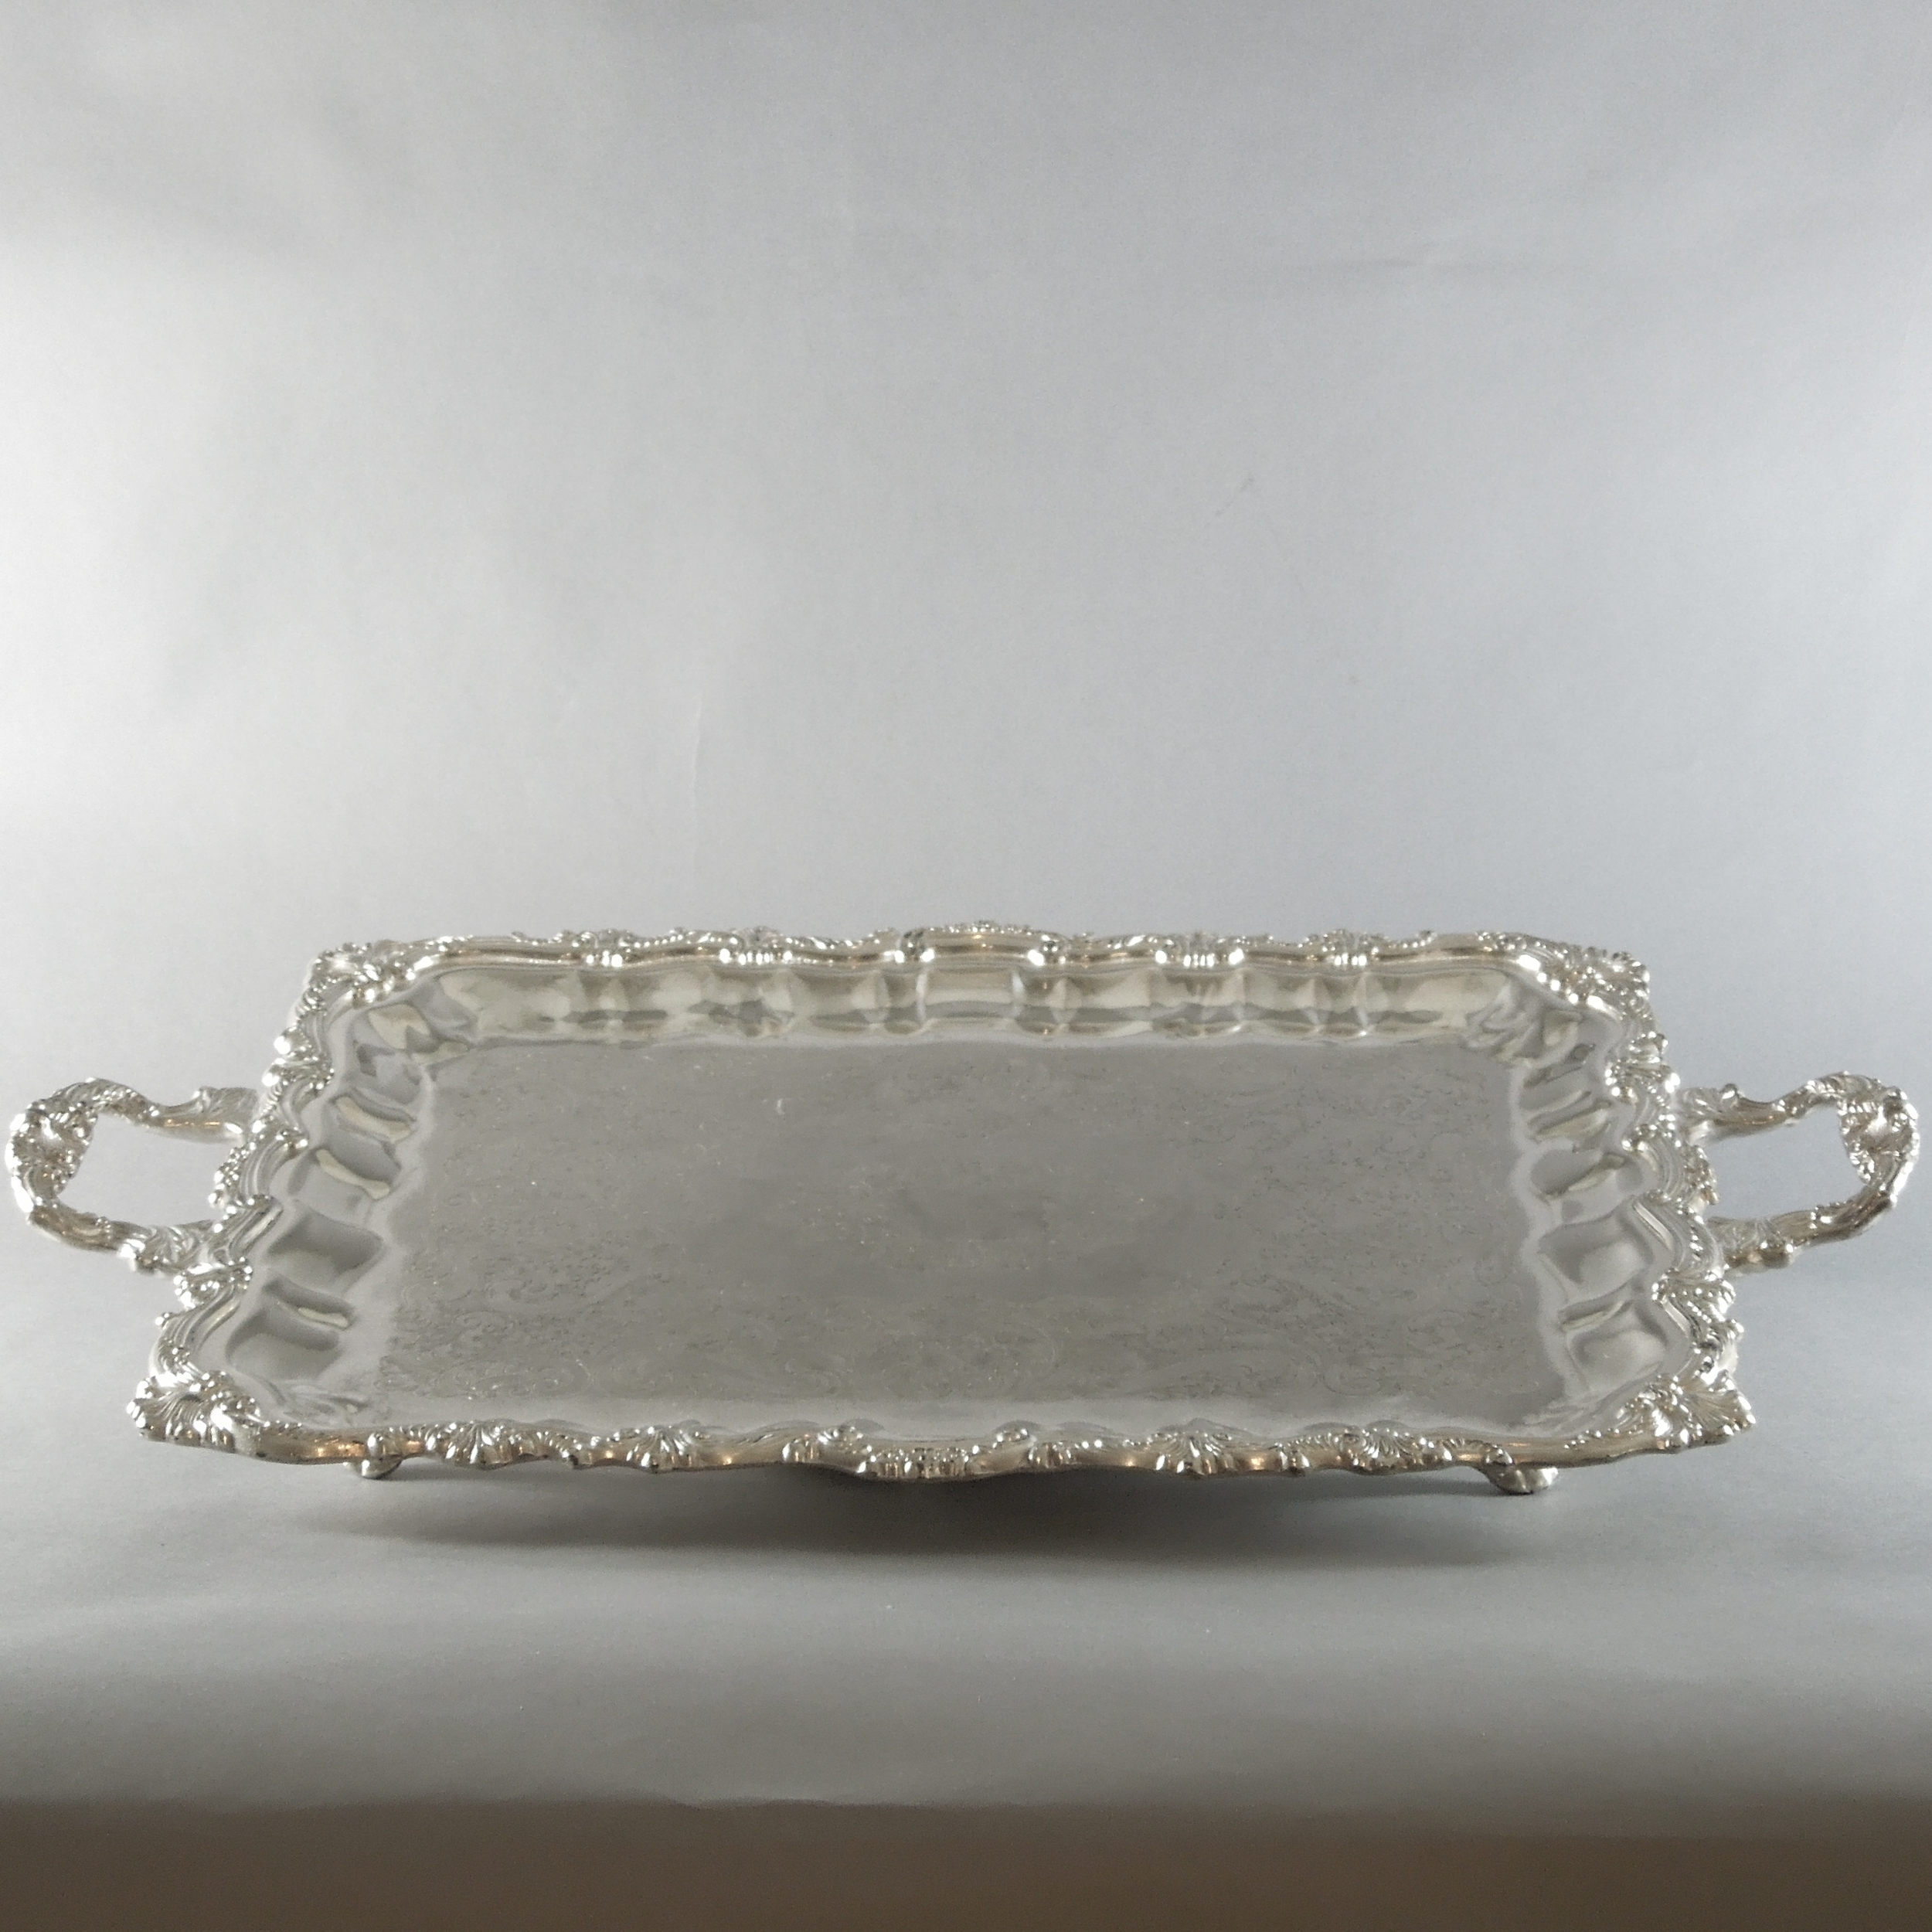 Silver Plated Footed Tray 20''x16'')(